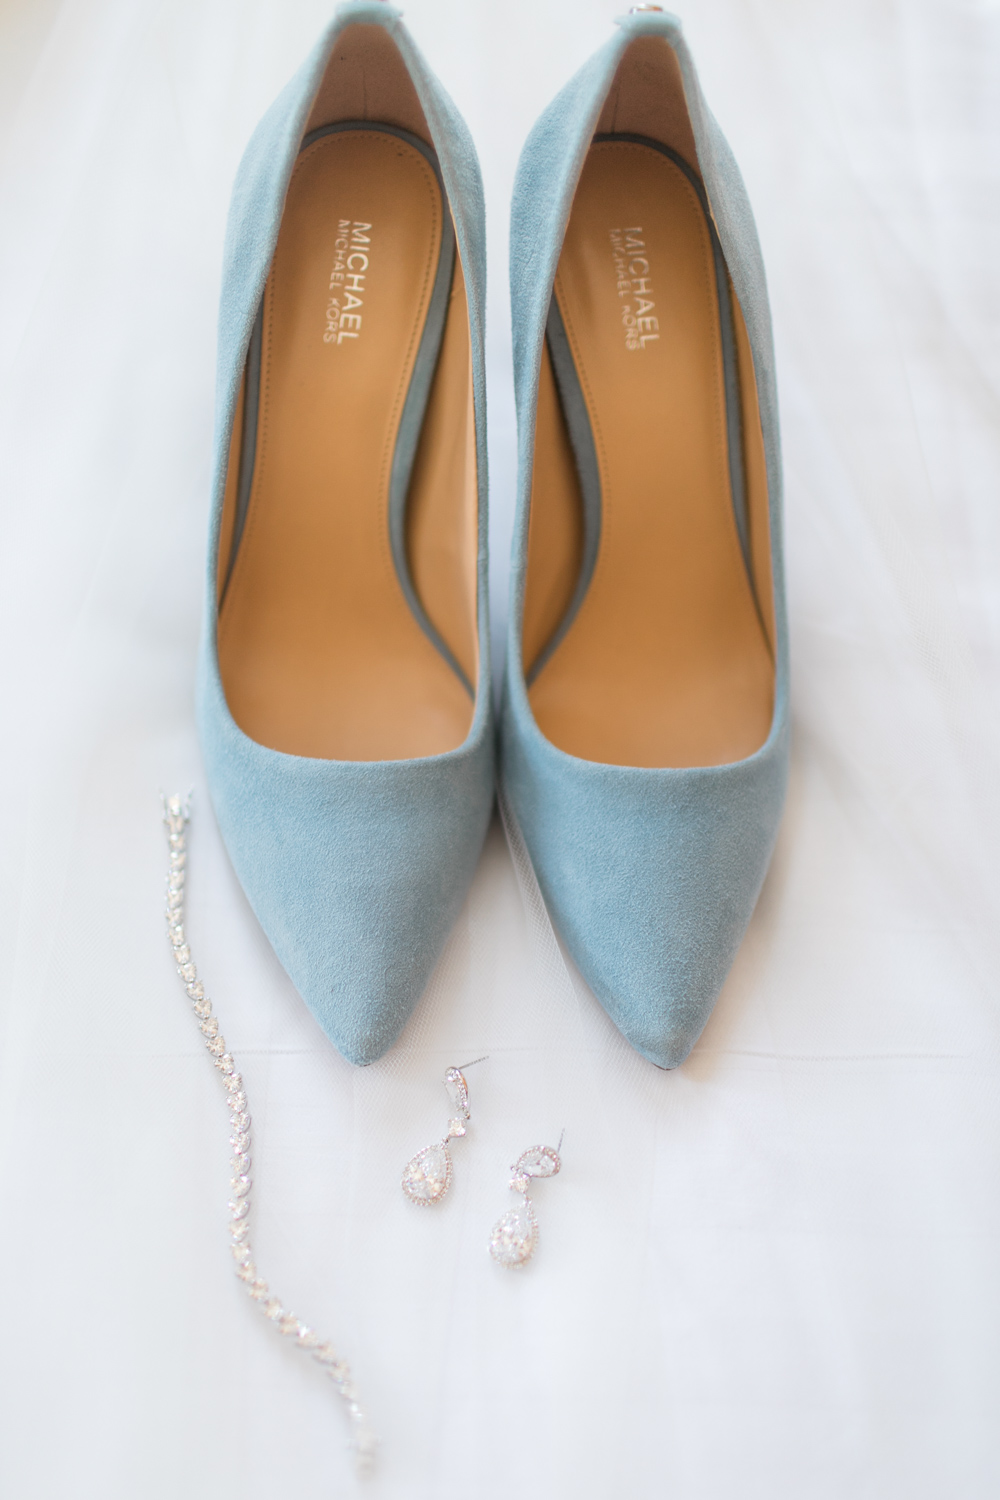 Blue velvet michael kors shoes for a wedding day